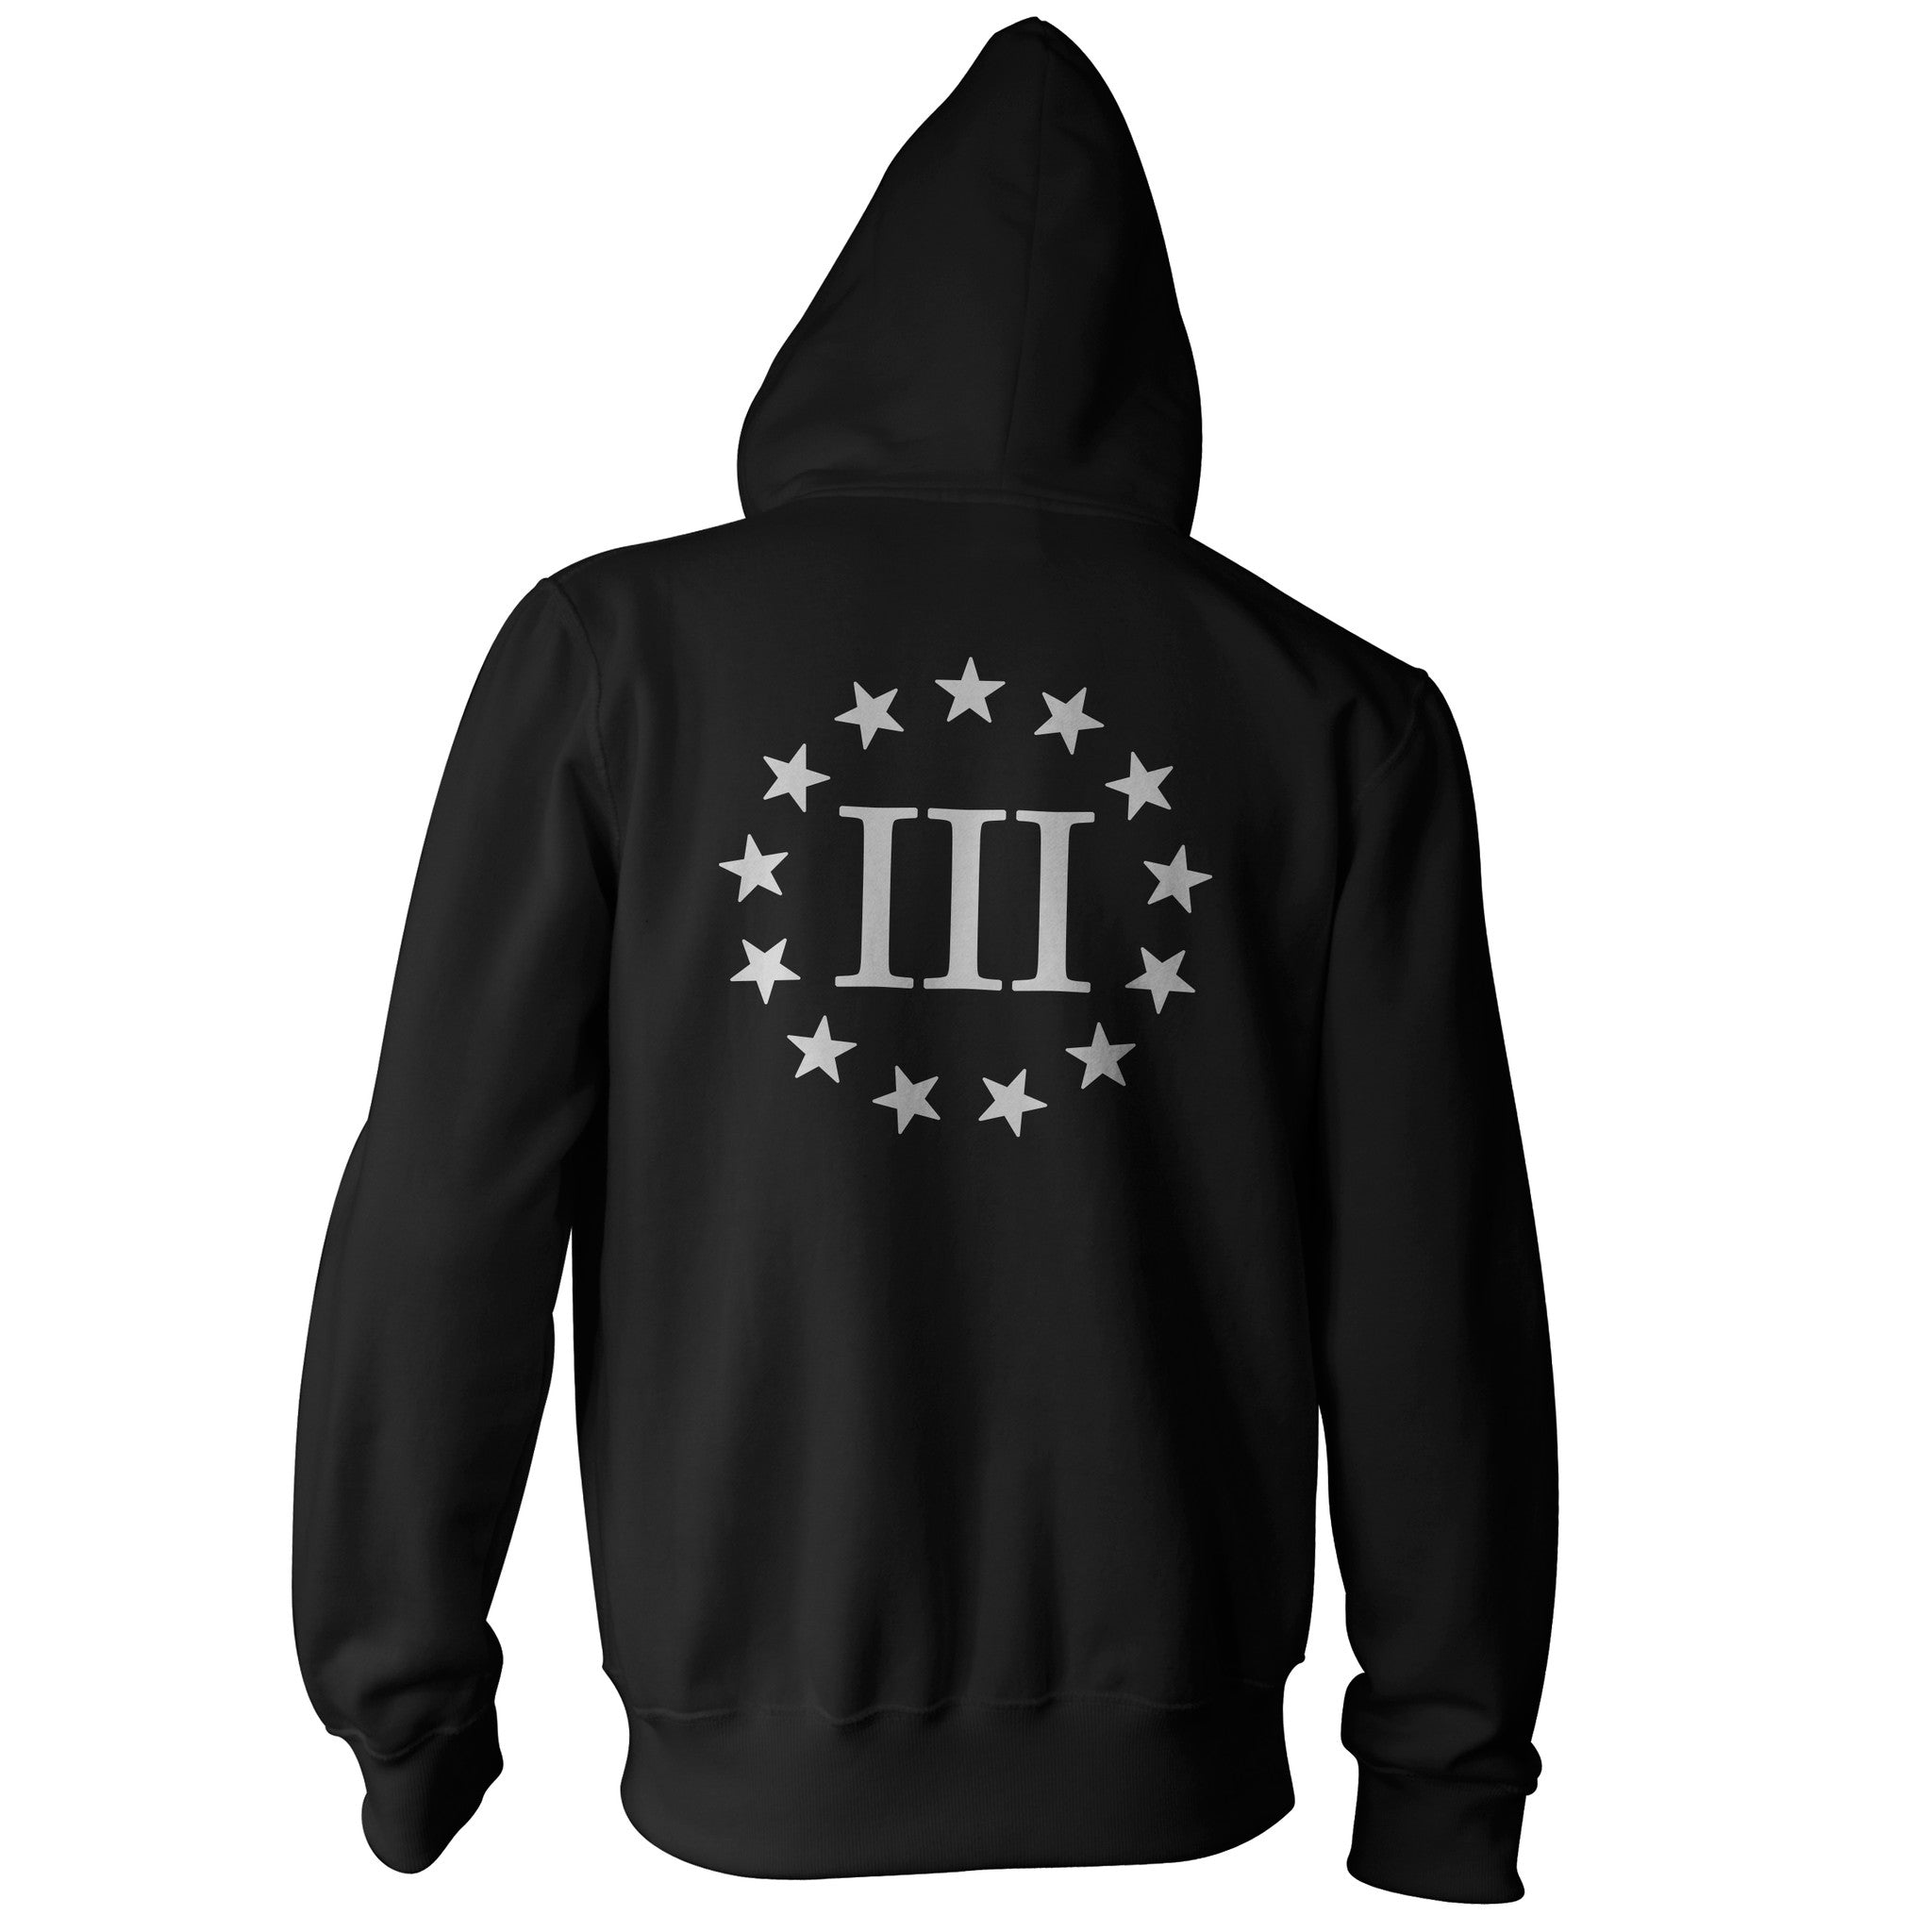 Zip Up Hooded Sweatshirt - III & 13 Stars